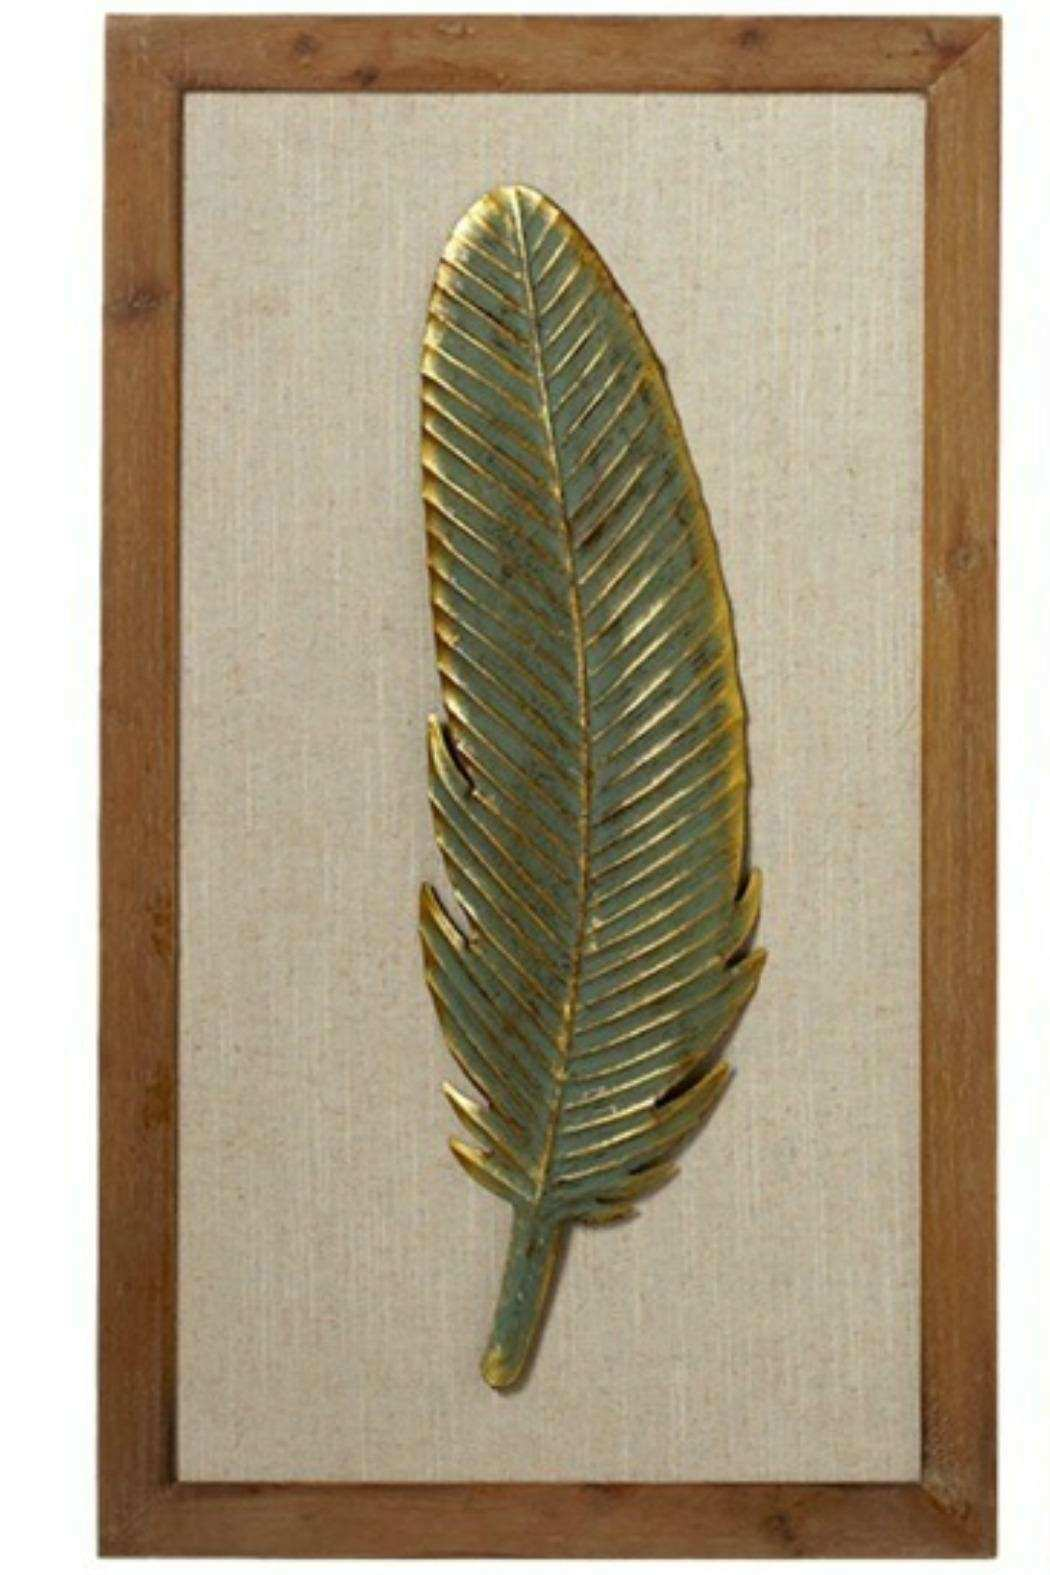 Walker s Feather Wall Decor from Alabama — Shoptiques